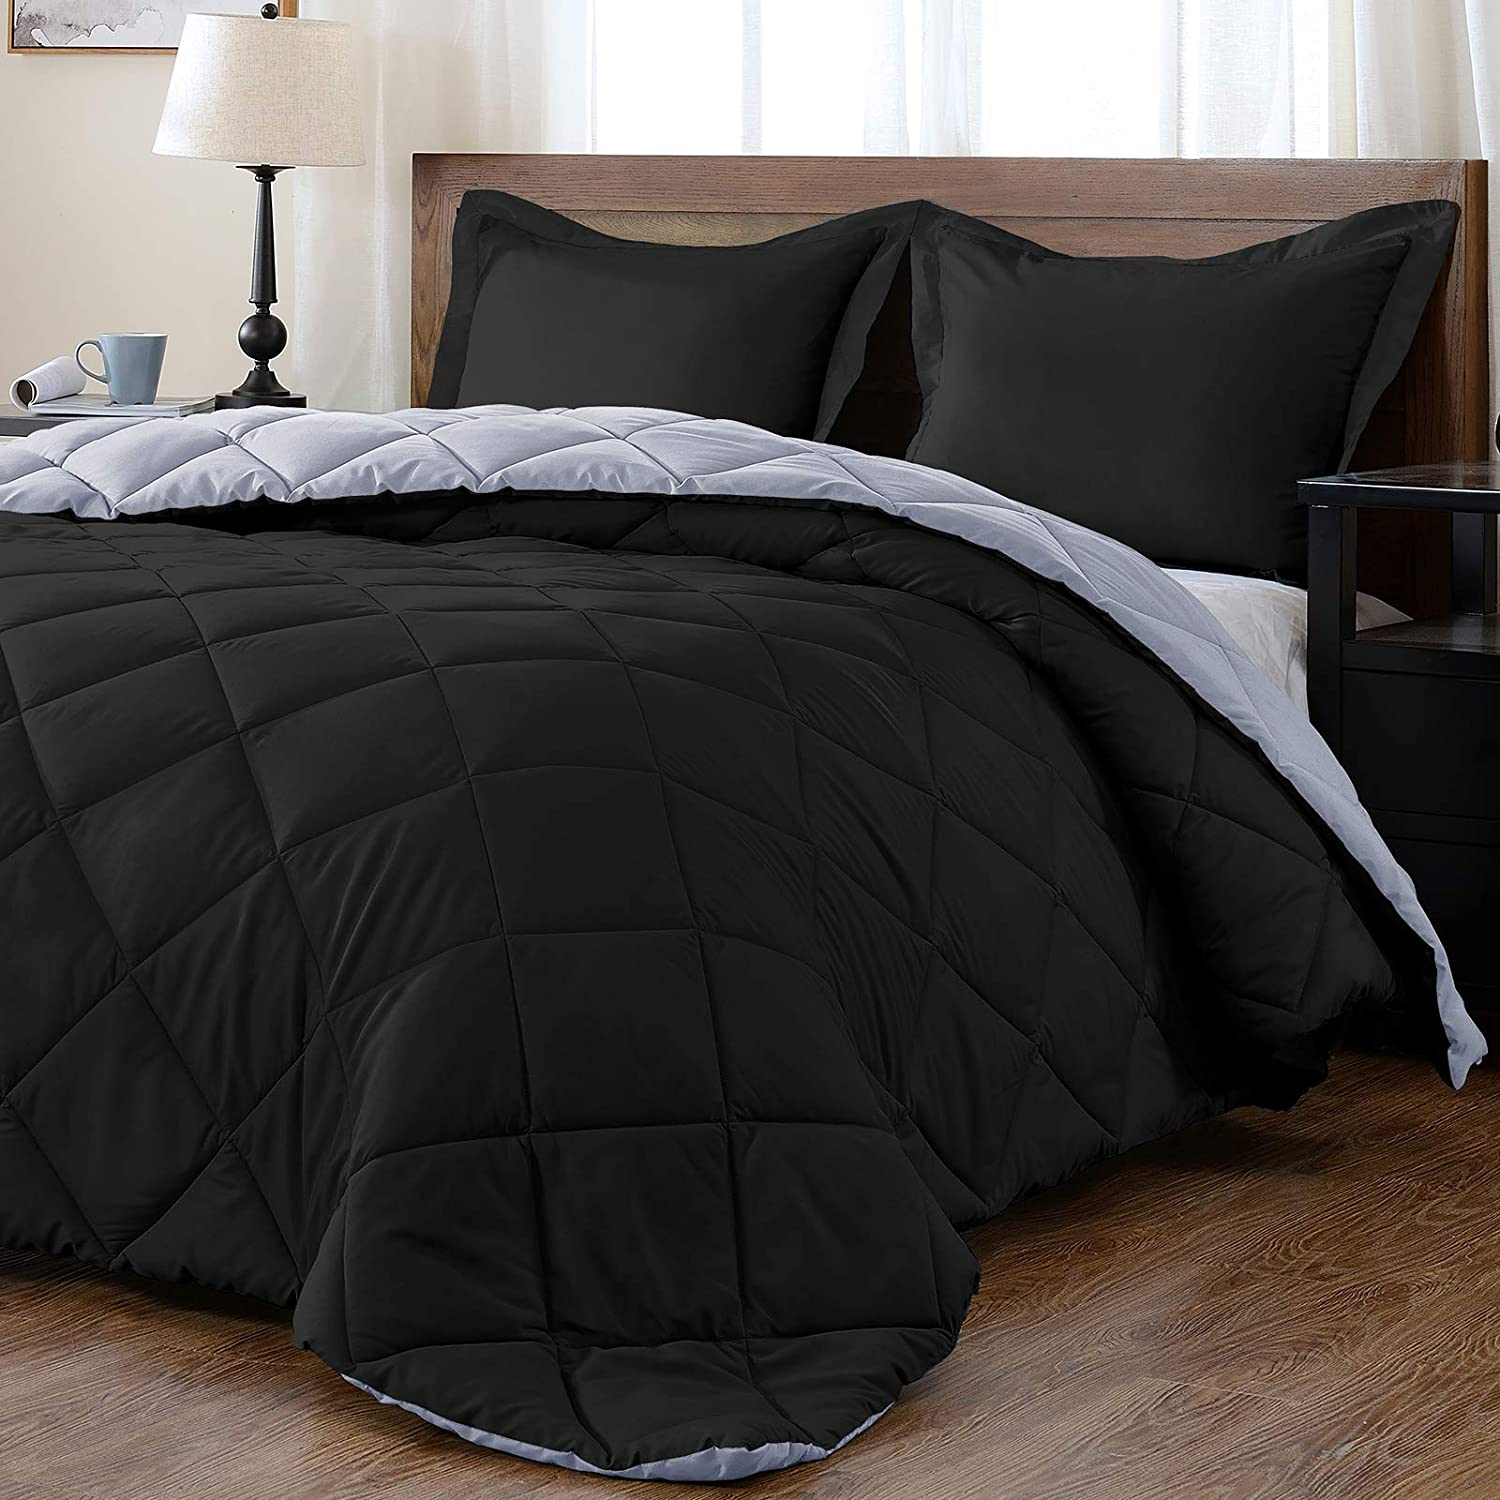 Downluxe Lightweight Solid Comforter Set Twin With 1 Pillow Sham 2 Piece Set Black And Grey Down Alternative Reversible Comforter Home Kitchen